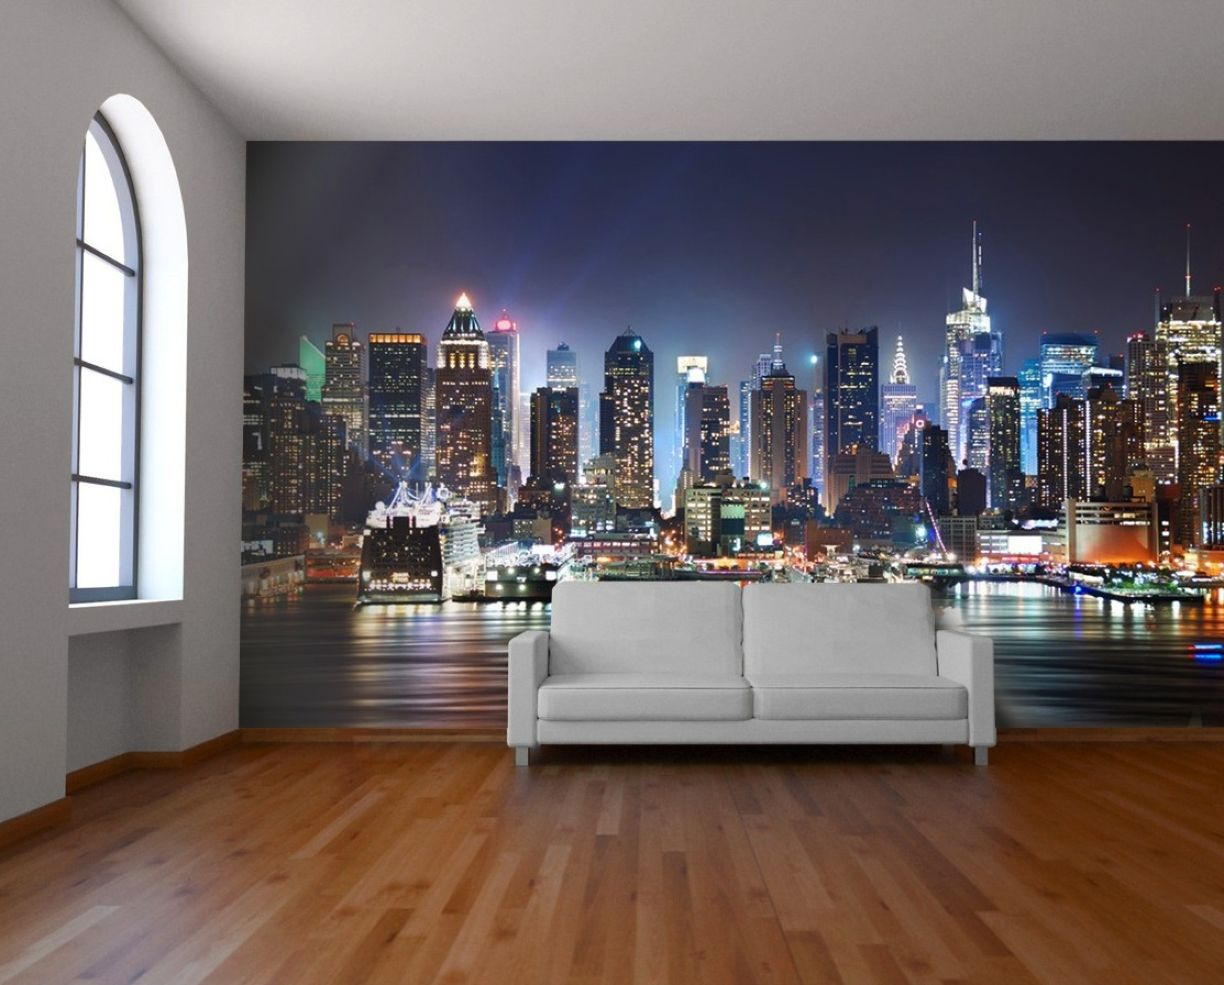 Charmant City For Bedroom Wallpaper